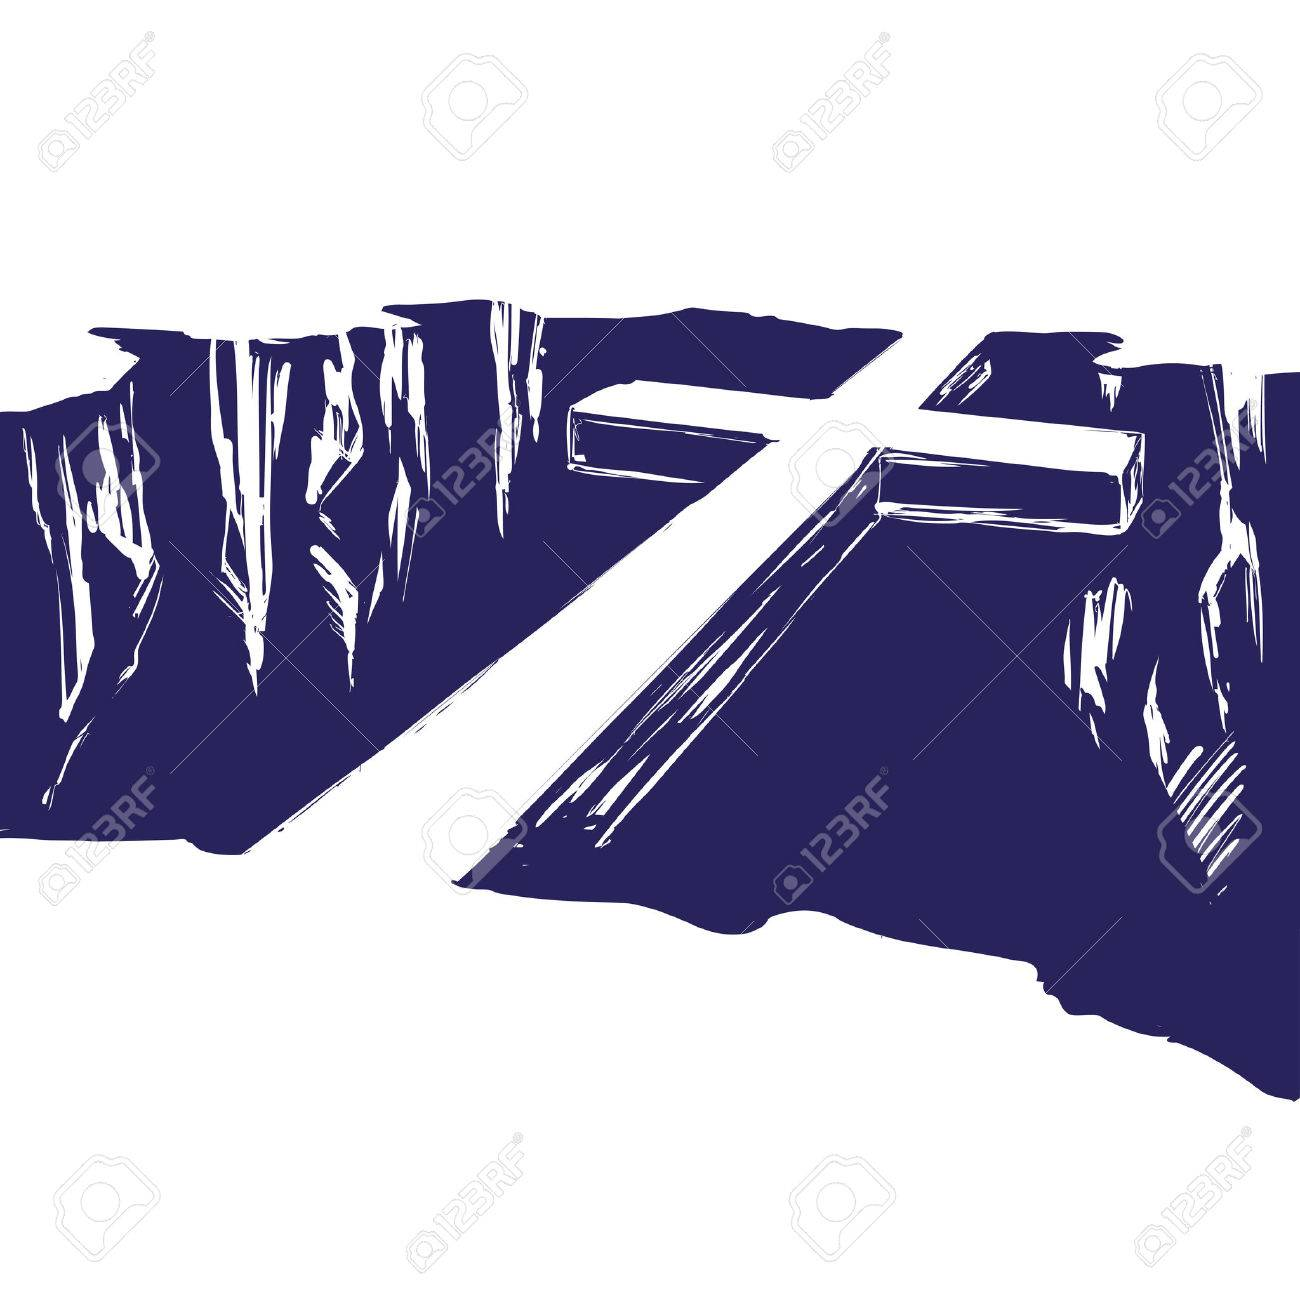 Christian wooden cross lying over the chasm, uniting us with God. Symbol of Christianity in hand drawn vector illustration sketch - 77507345